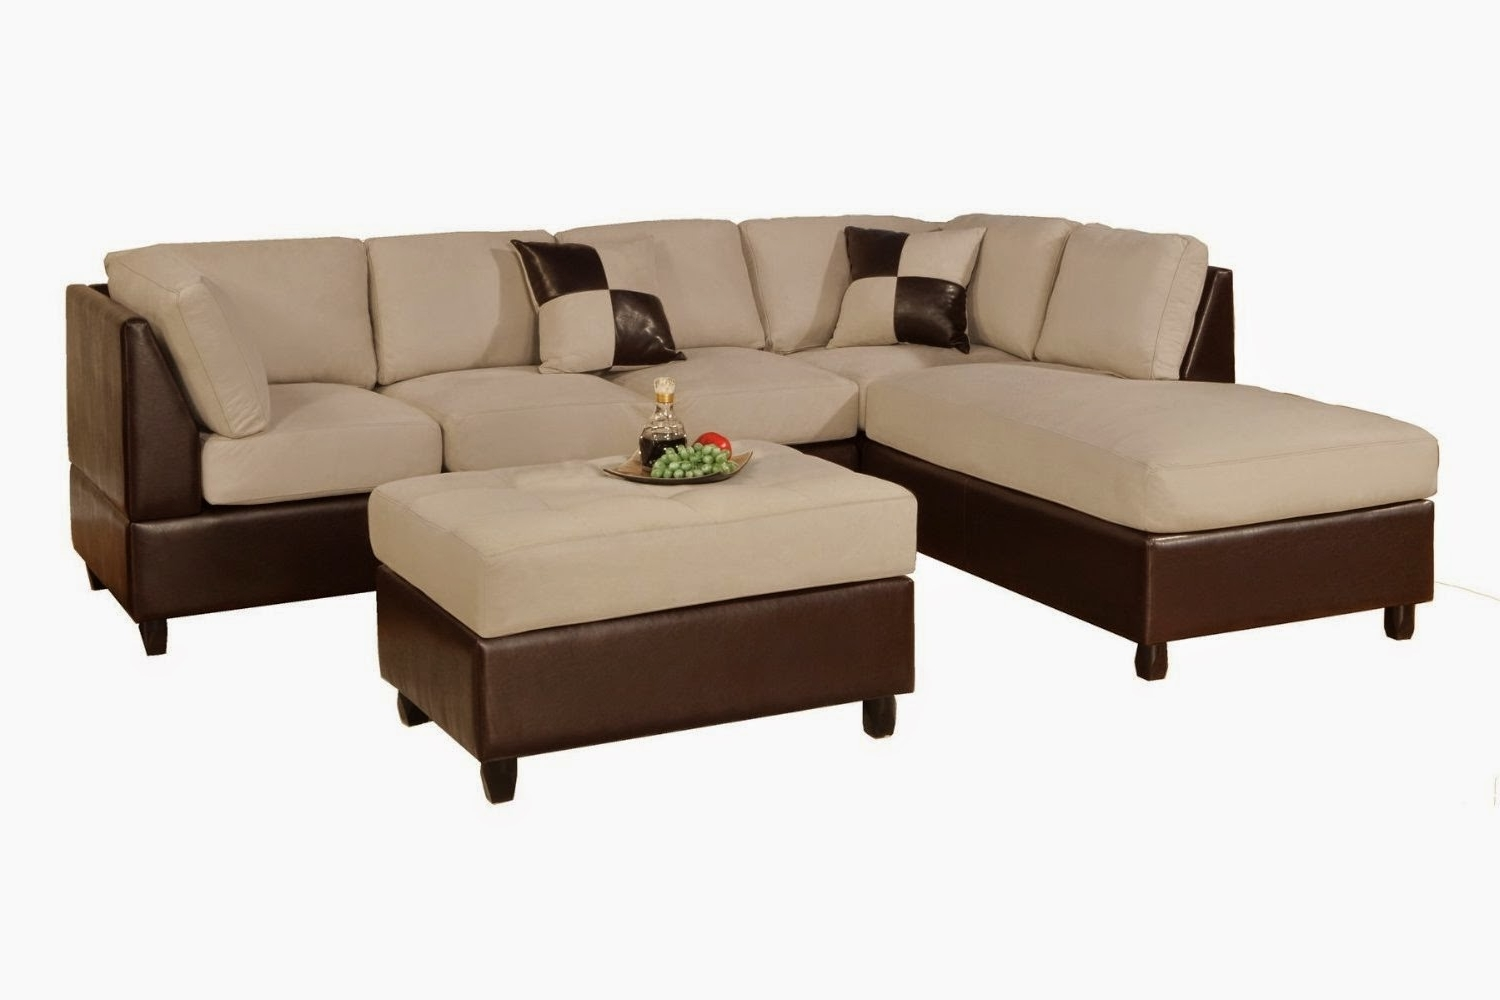 Sectional Sofas In Philippines For Preferred Peterborough Swansea Philippines Nice Philippine Rightmove (View 10 of 20)